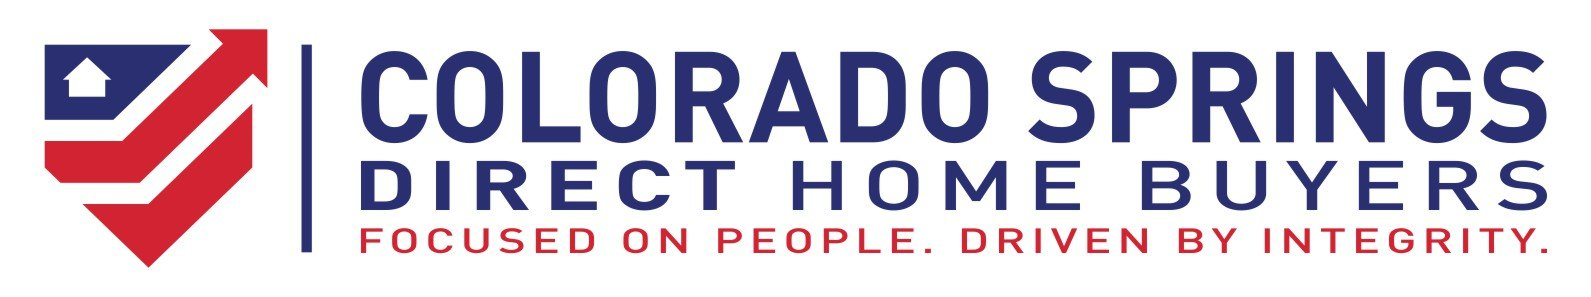 we buy houses Colorado Springs CO | logo